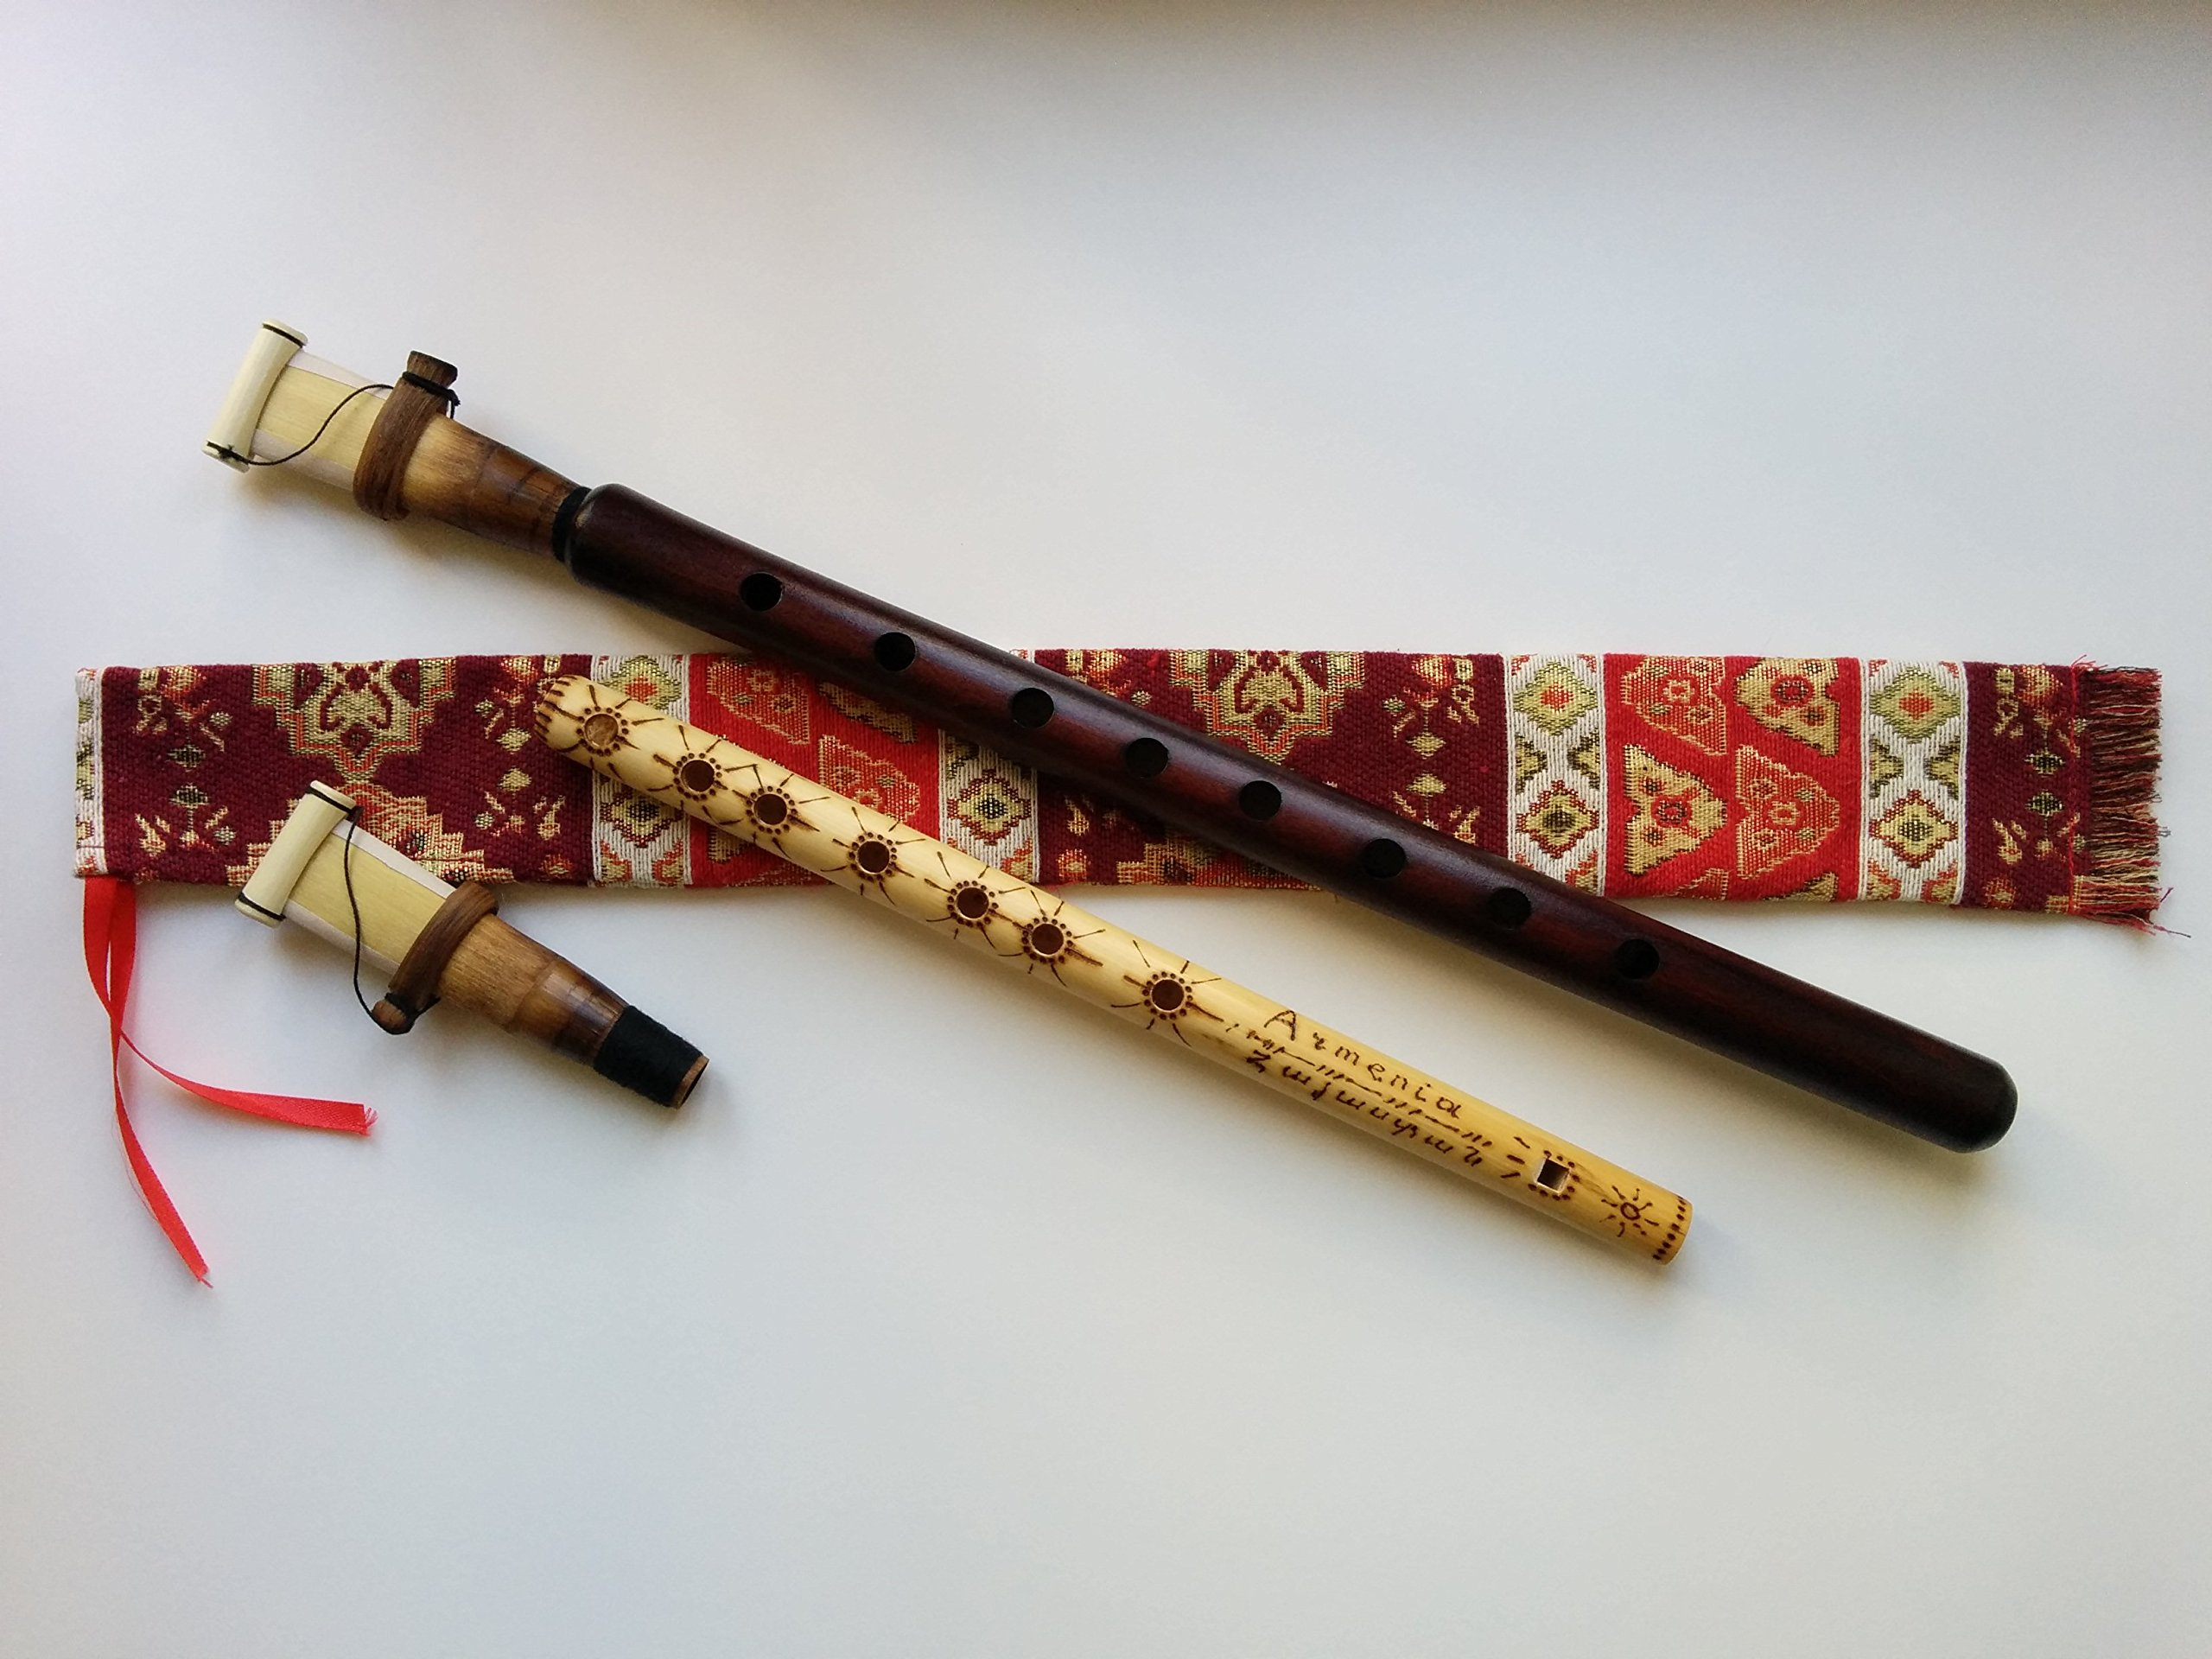 Armenian DUDUK PRO Musical Instrument from Apricot Wood, 2 Reeds, National Case, Playing Instruction, Free Gift - Kamesh Flute